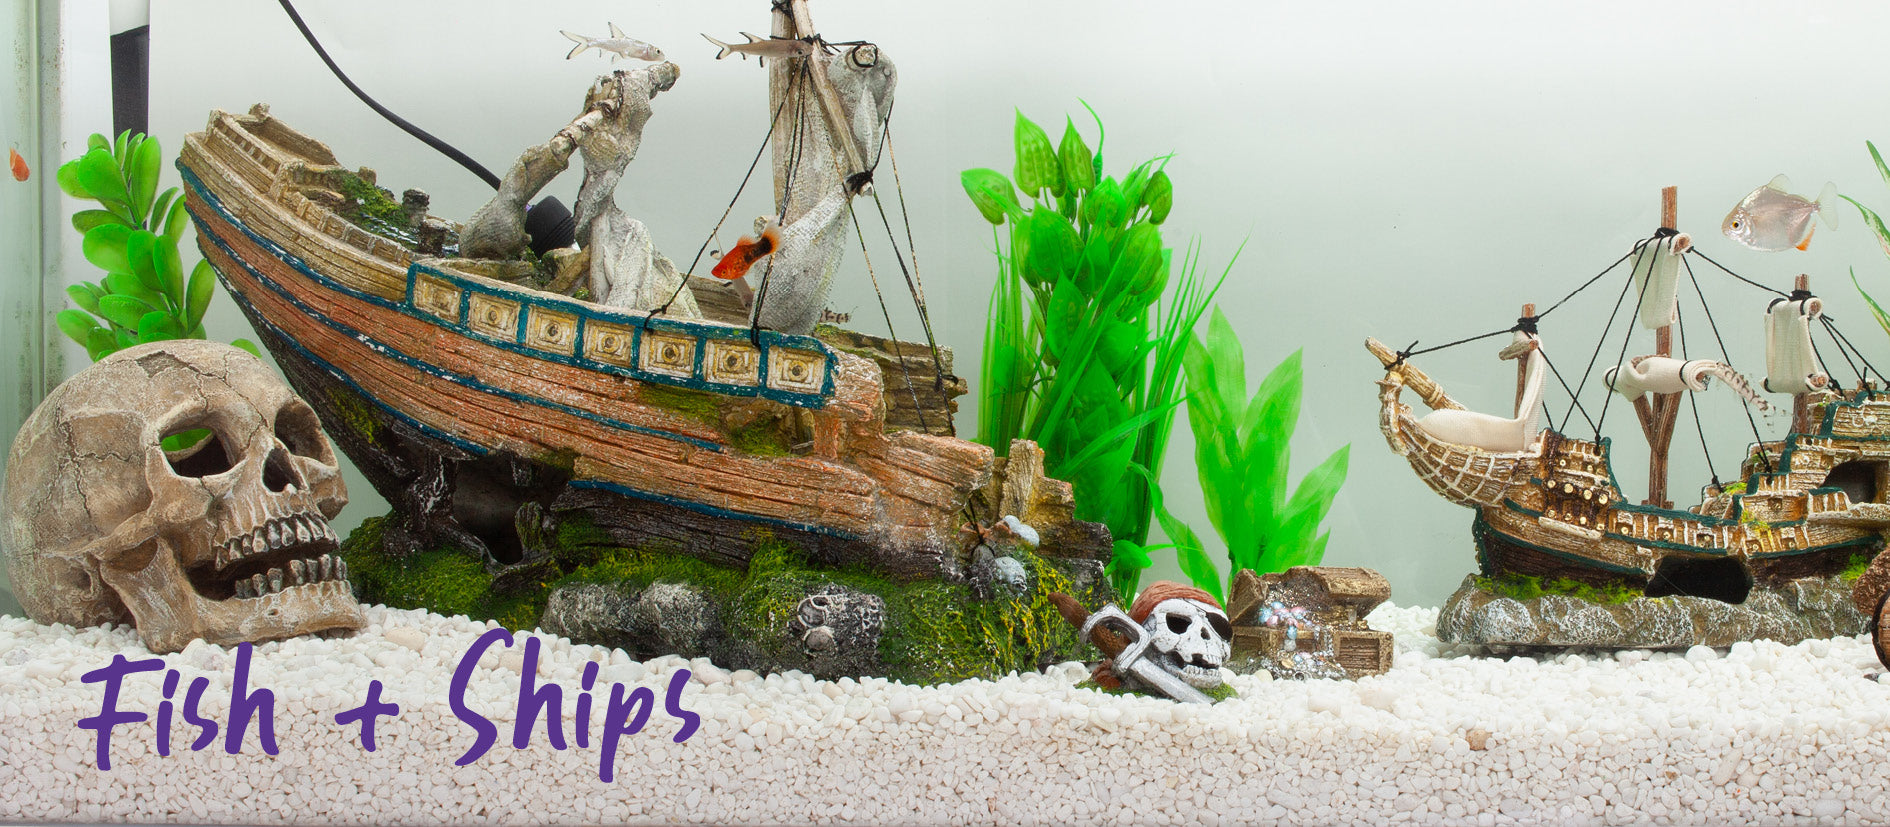 fish tank ornaments showing skull and sunken pirate ship with plastic green plants